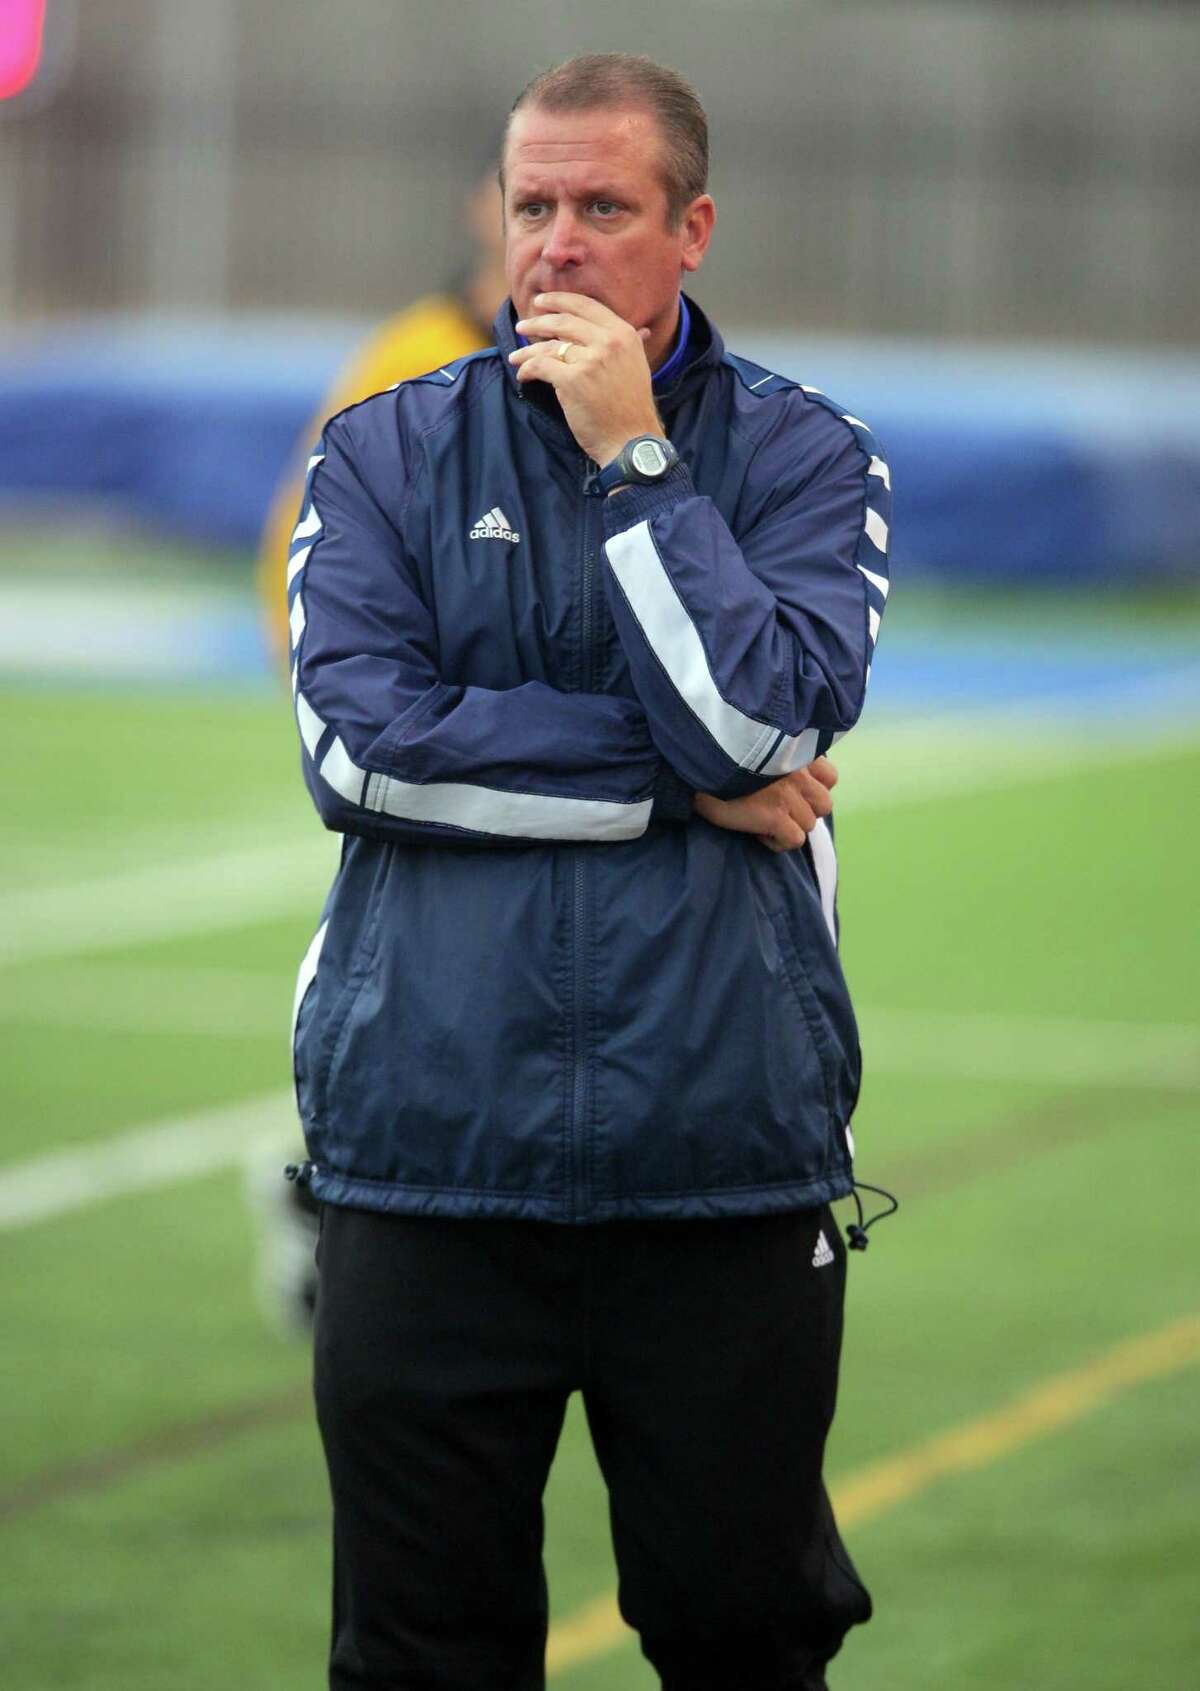 Friendswood boys' head soccer coach Stephen Peter hopes his young team can mature quickly as the District 24-6A race nears.